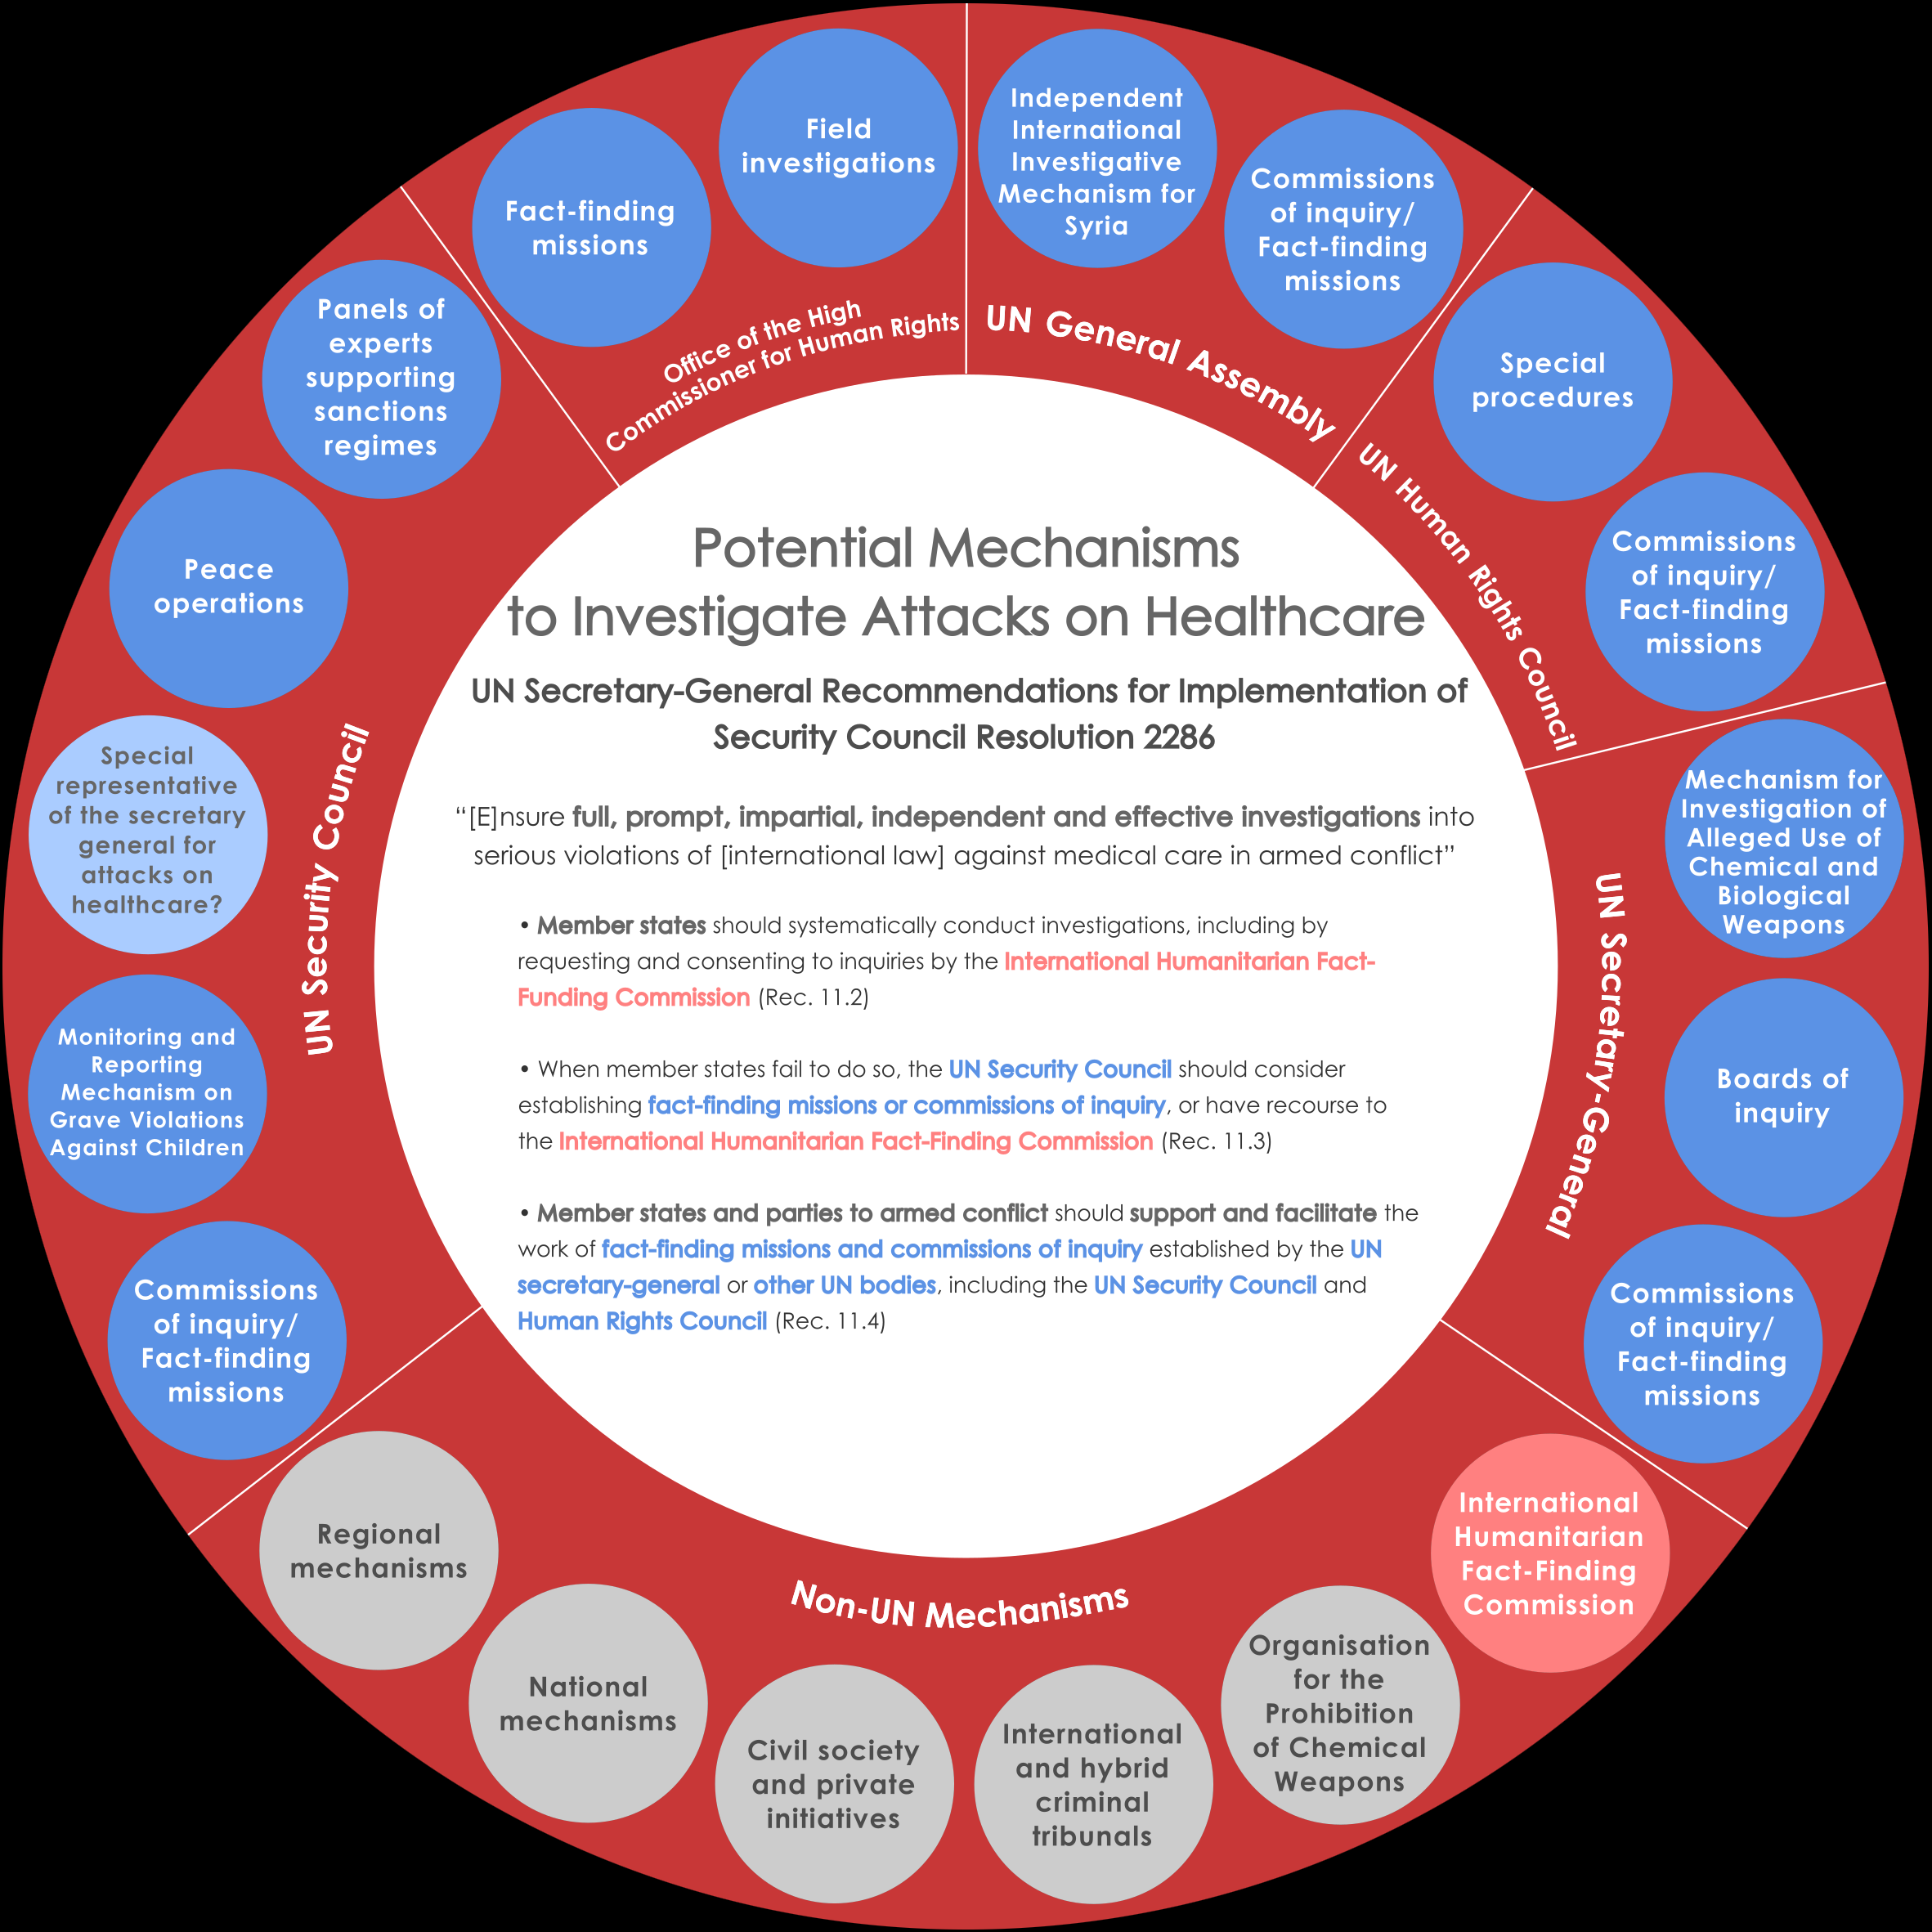 evaluating mechanisms for investigating attacks